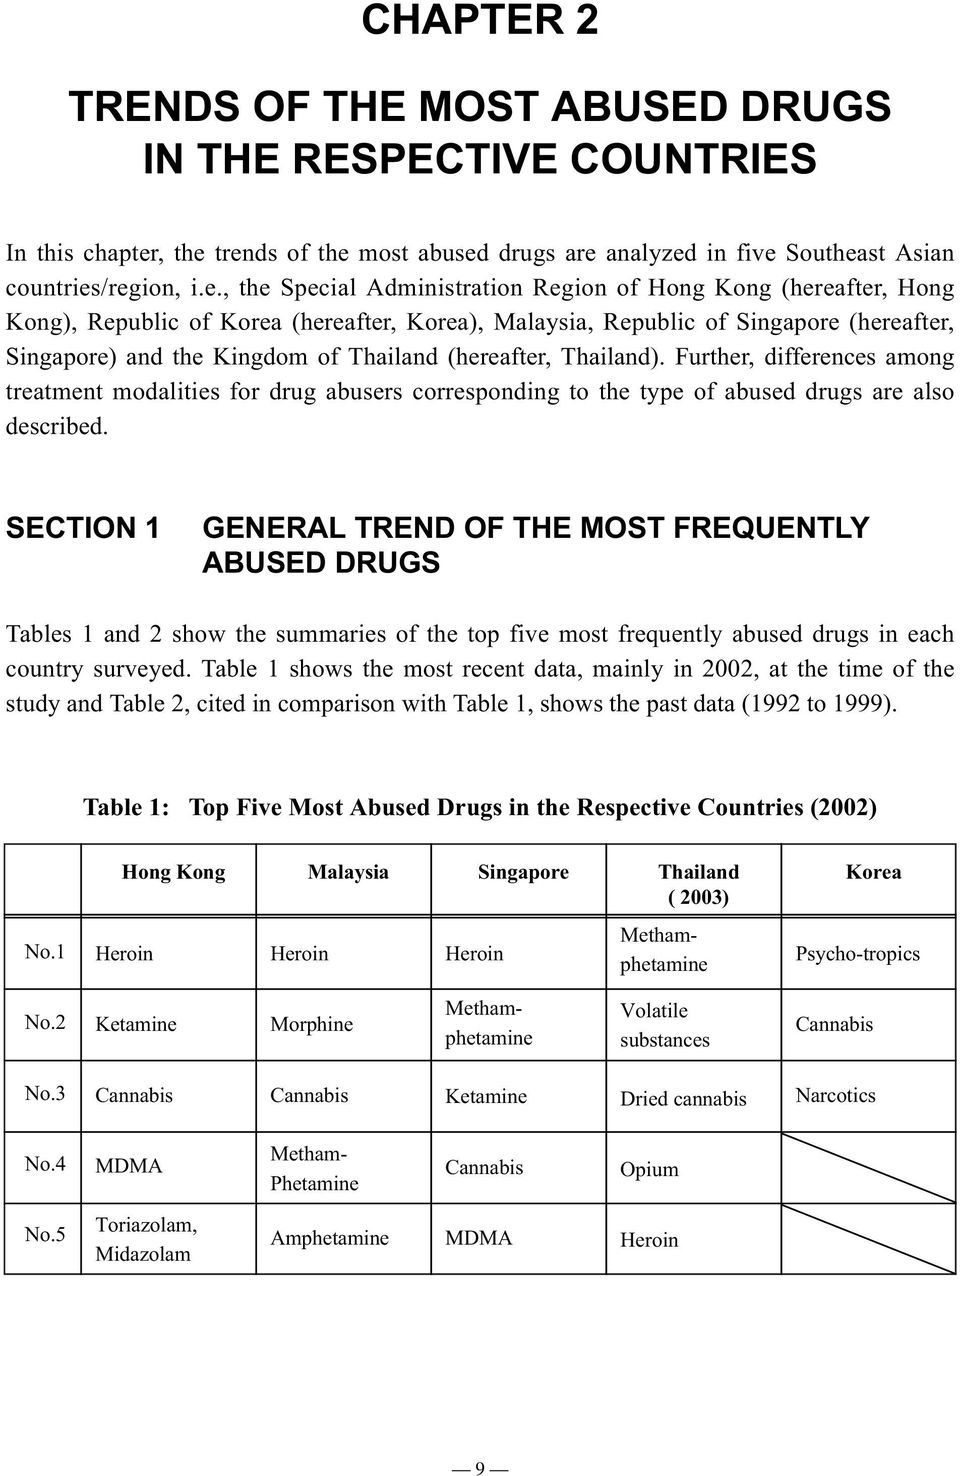 trends of the most abused drugs are analyzed in five Southeast Asian countries/region, i.e.Special Administration Region of Hong Kong (hereafter, Hong Kong), Republic of Korea (hereafter, Korea),